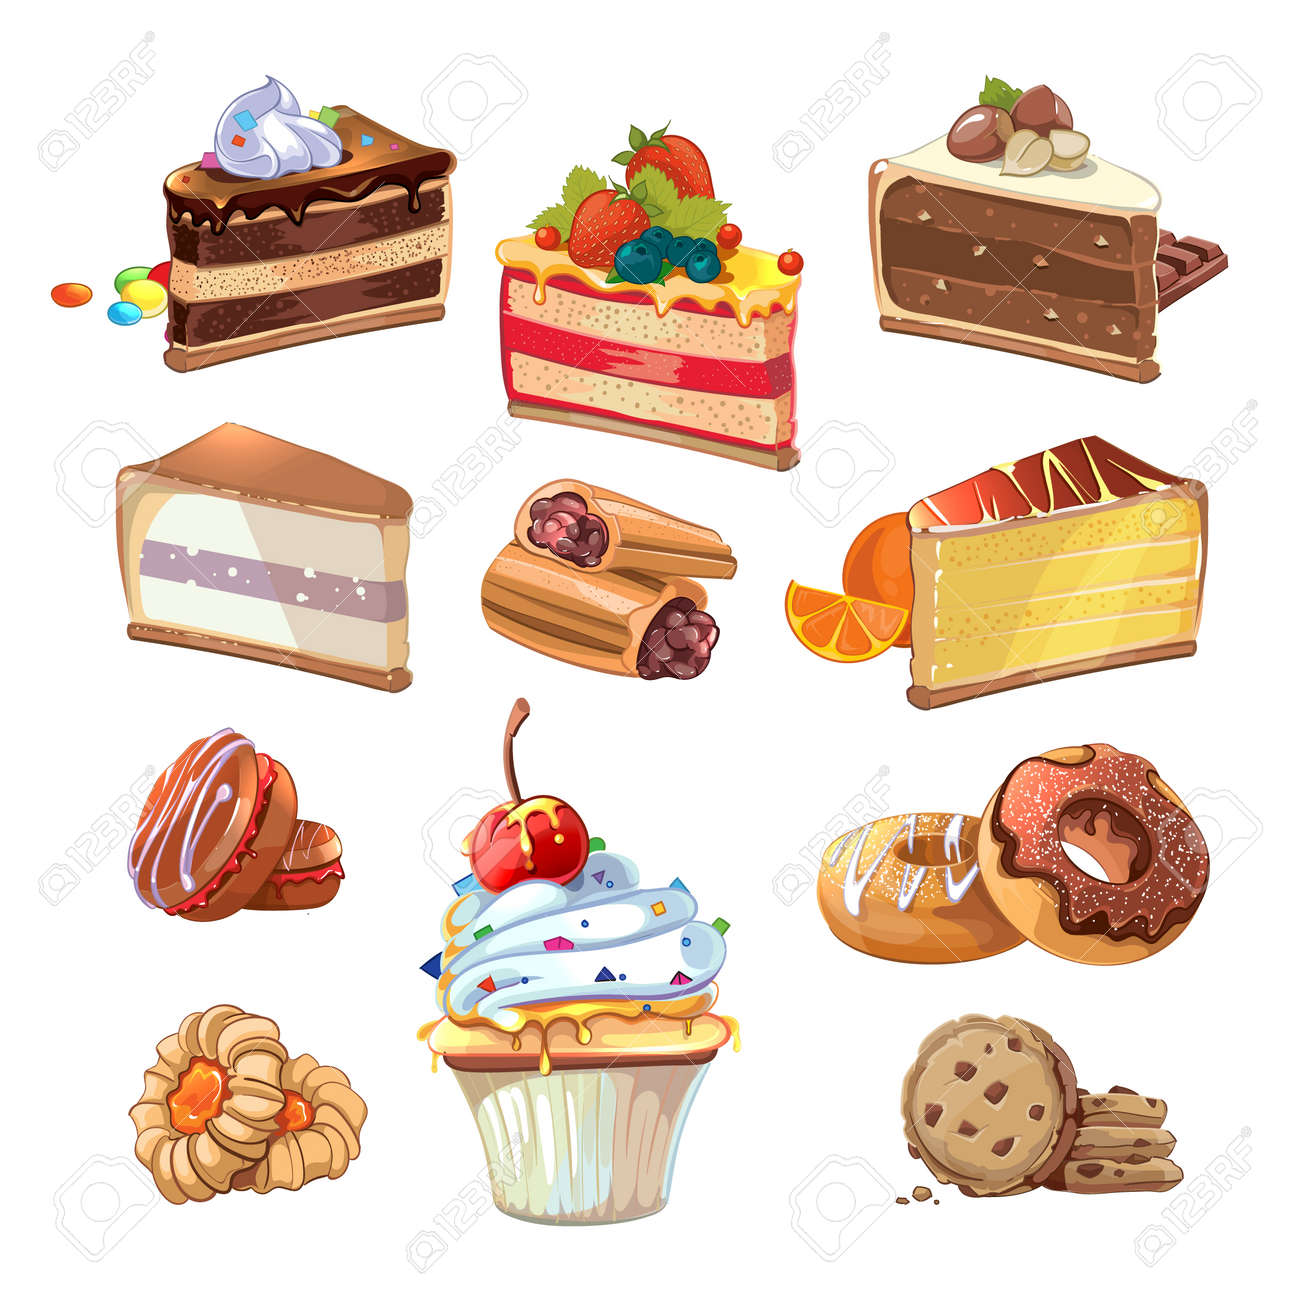 Pastry set in cartoon style. Food cake, sweet bakery, tasty snack with cream, vector illustration - 166760074